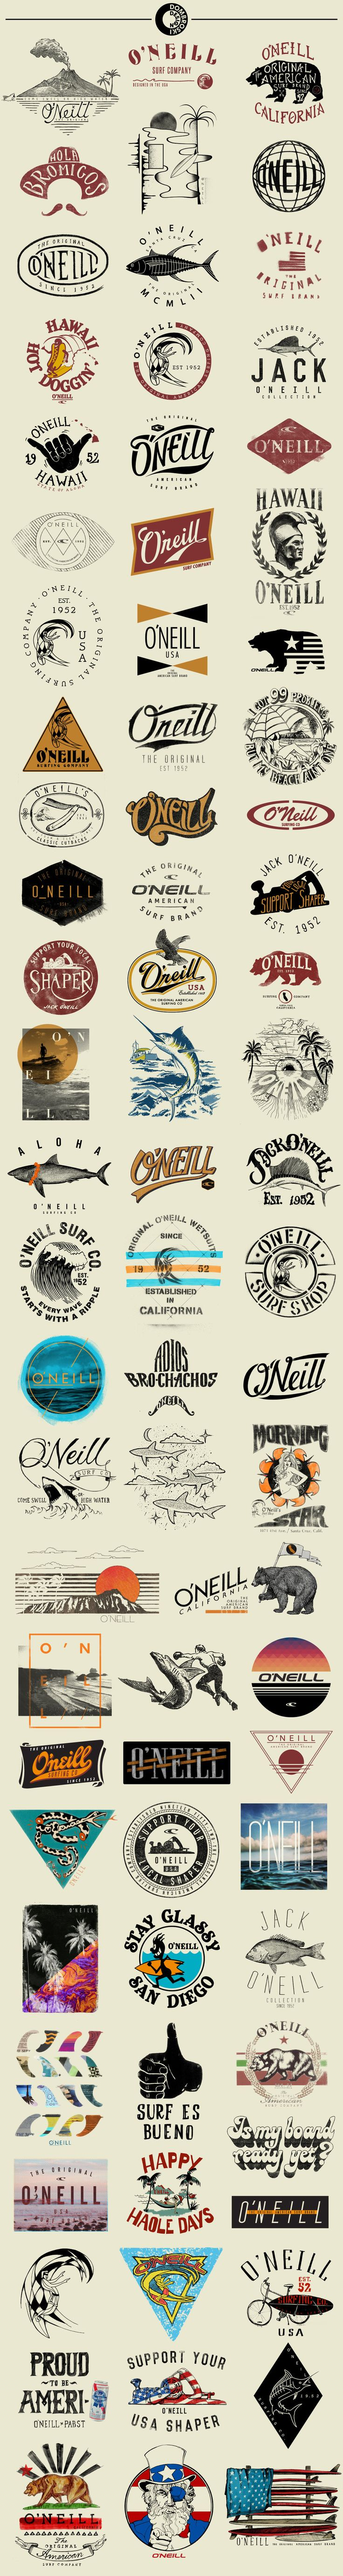 O'Neill is known as the Original American Surfing Company. It began as a…